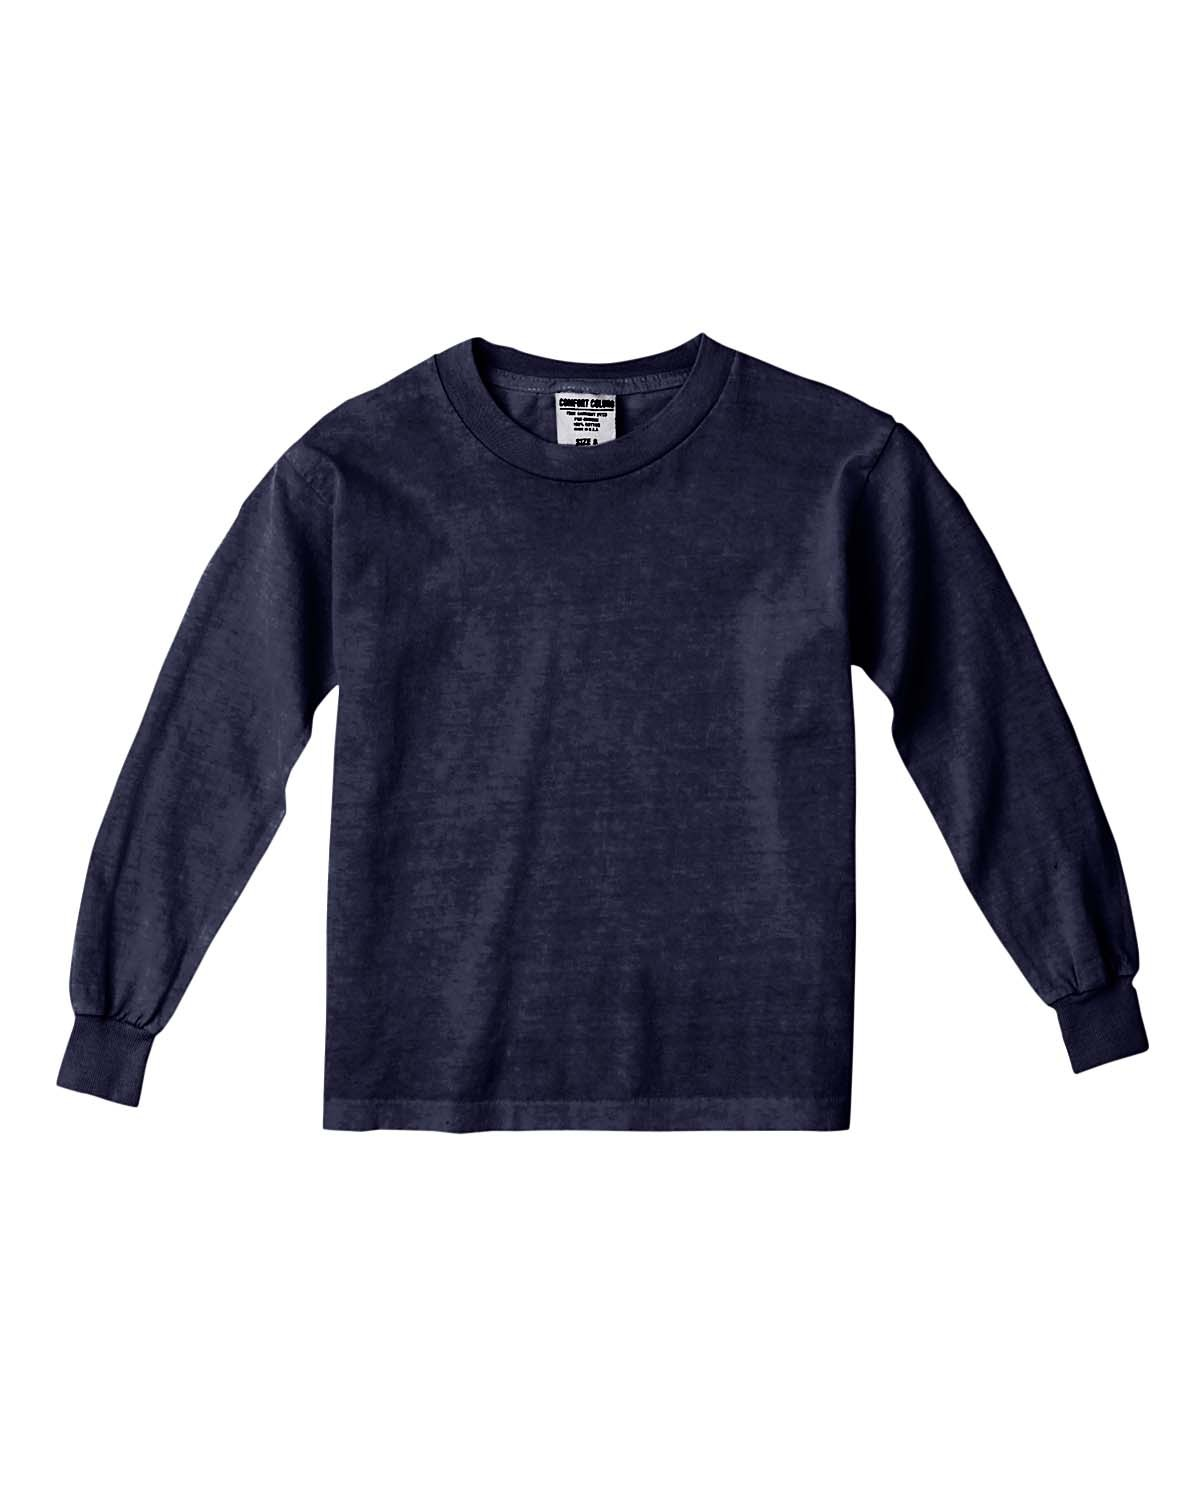 C3483 Comfort Colors Drop Ship TRUE NAVY